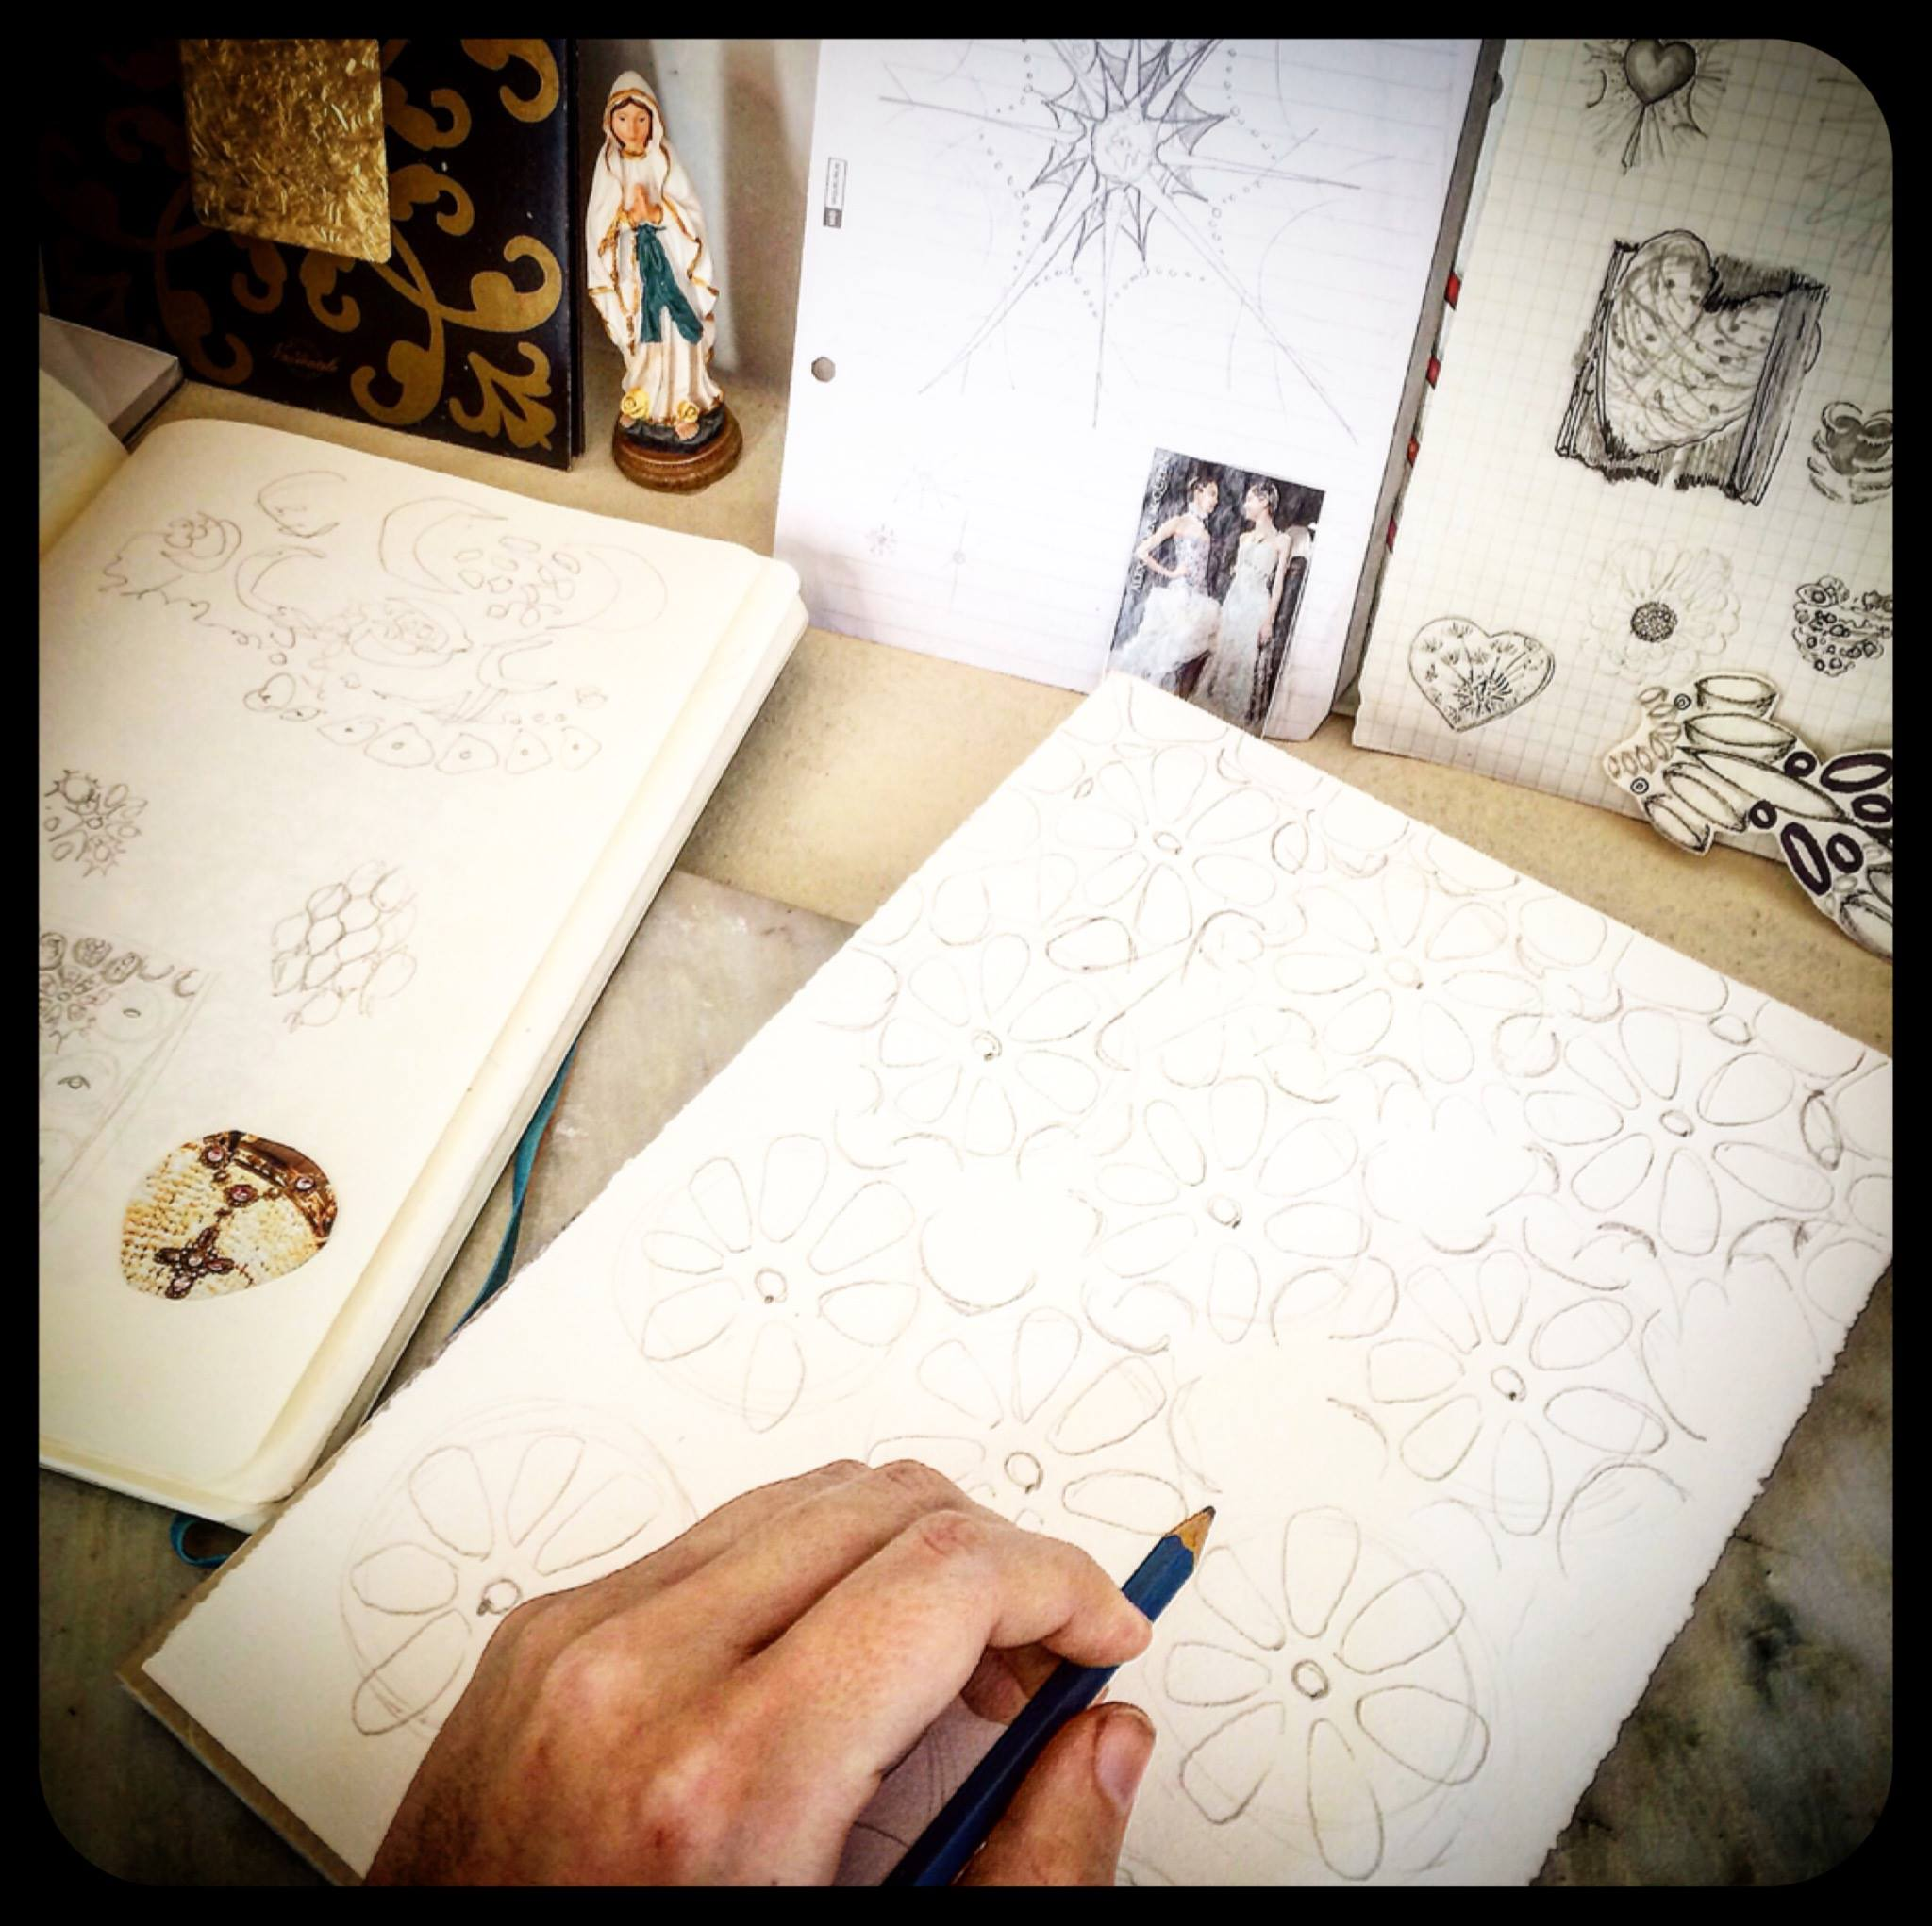 """Day 2: Once I've got a basic idea for the design I want to create, it's time to start sketching. I still keep all the """"dreamboard"""" elements nearby; throughout the whole process, staying close to what inspires me helps keep the design coherent."""